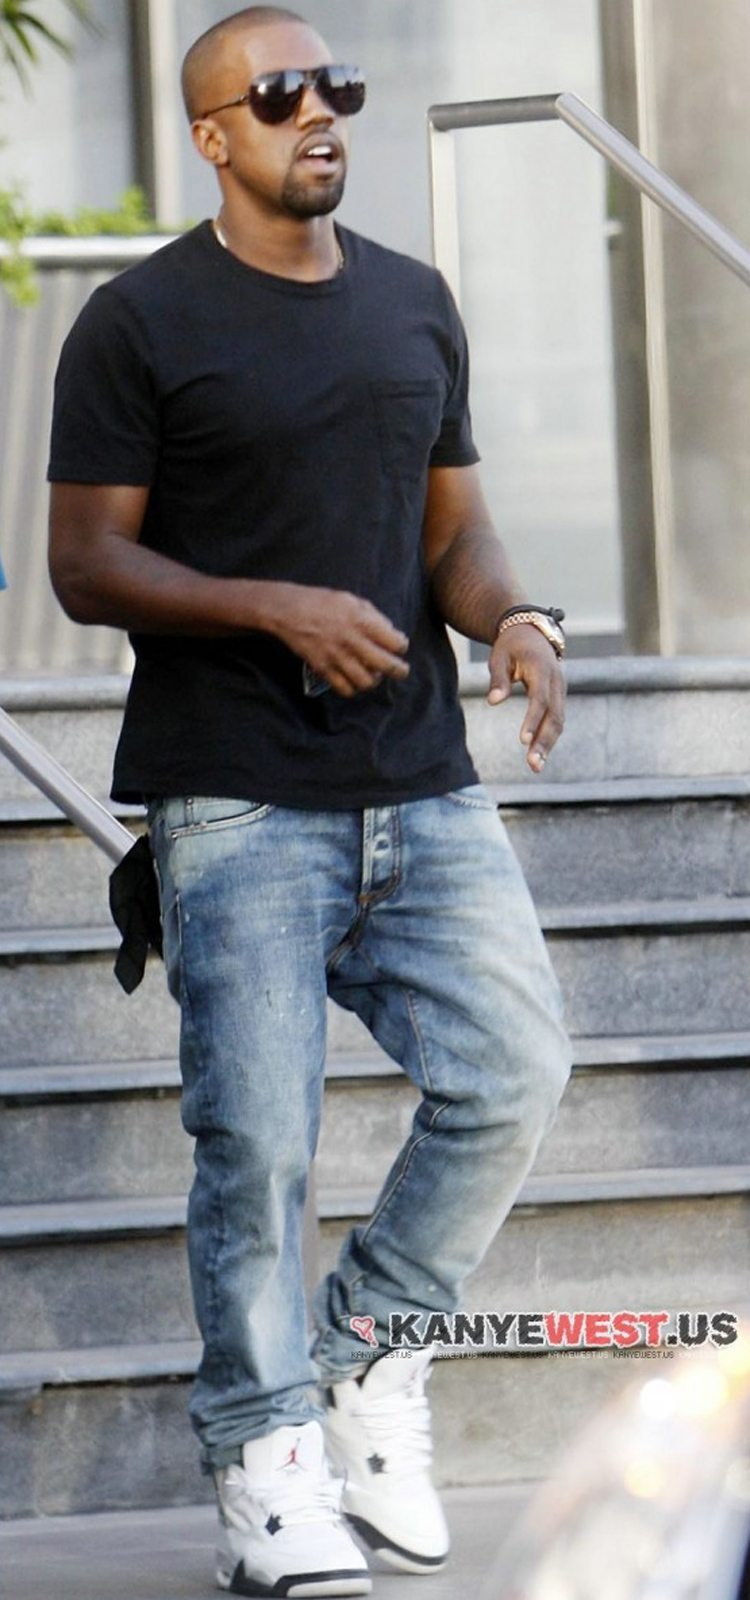 separation shoes 8c8a3 47873 ... Kanye West in the  99 Air Jordan 4 White Cement ...